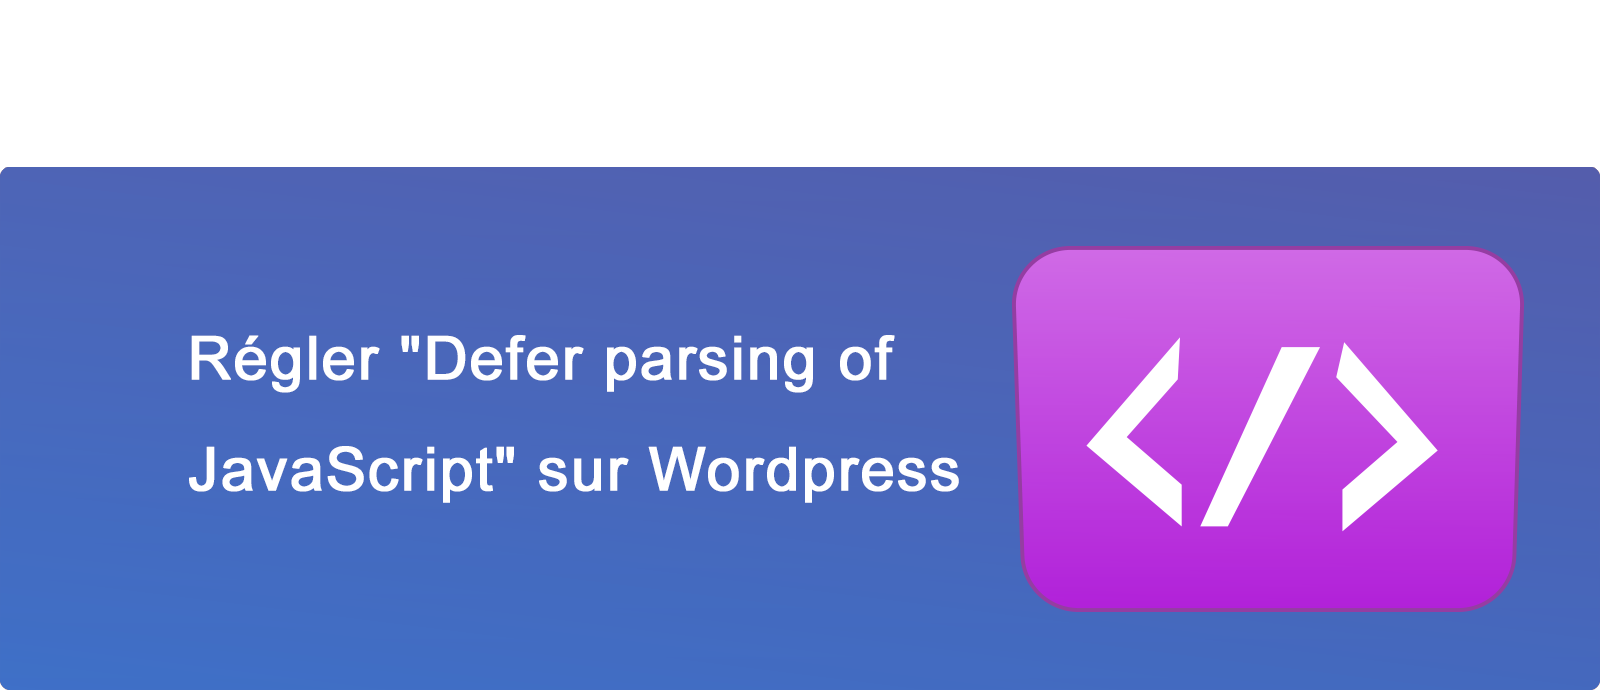 "Régler ""Defer parsing of JavaScript"" sur Wordpress"